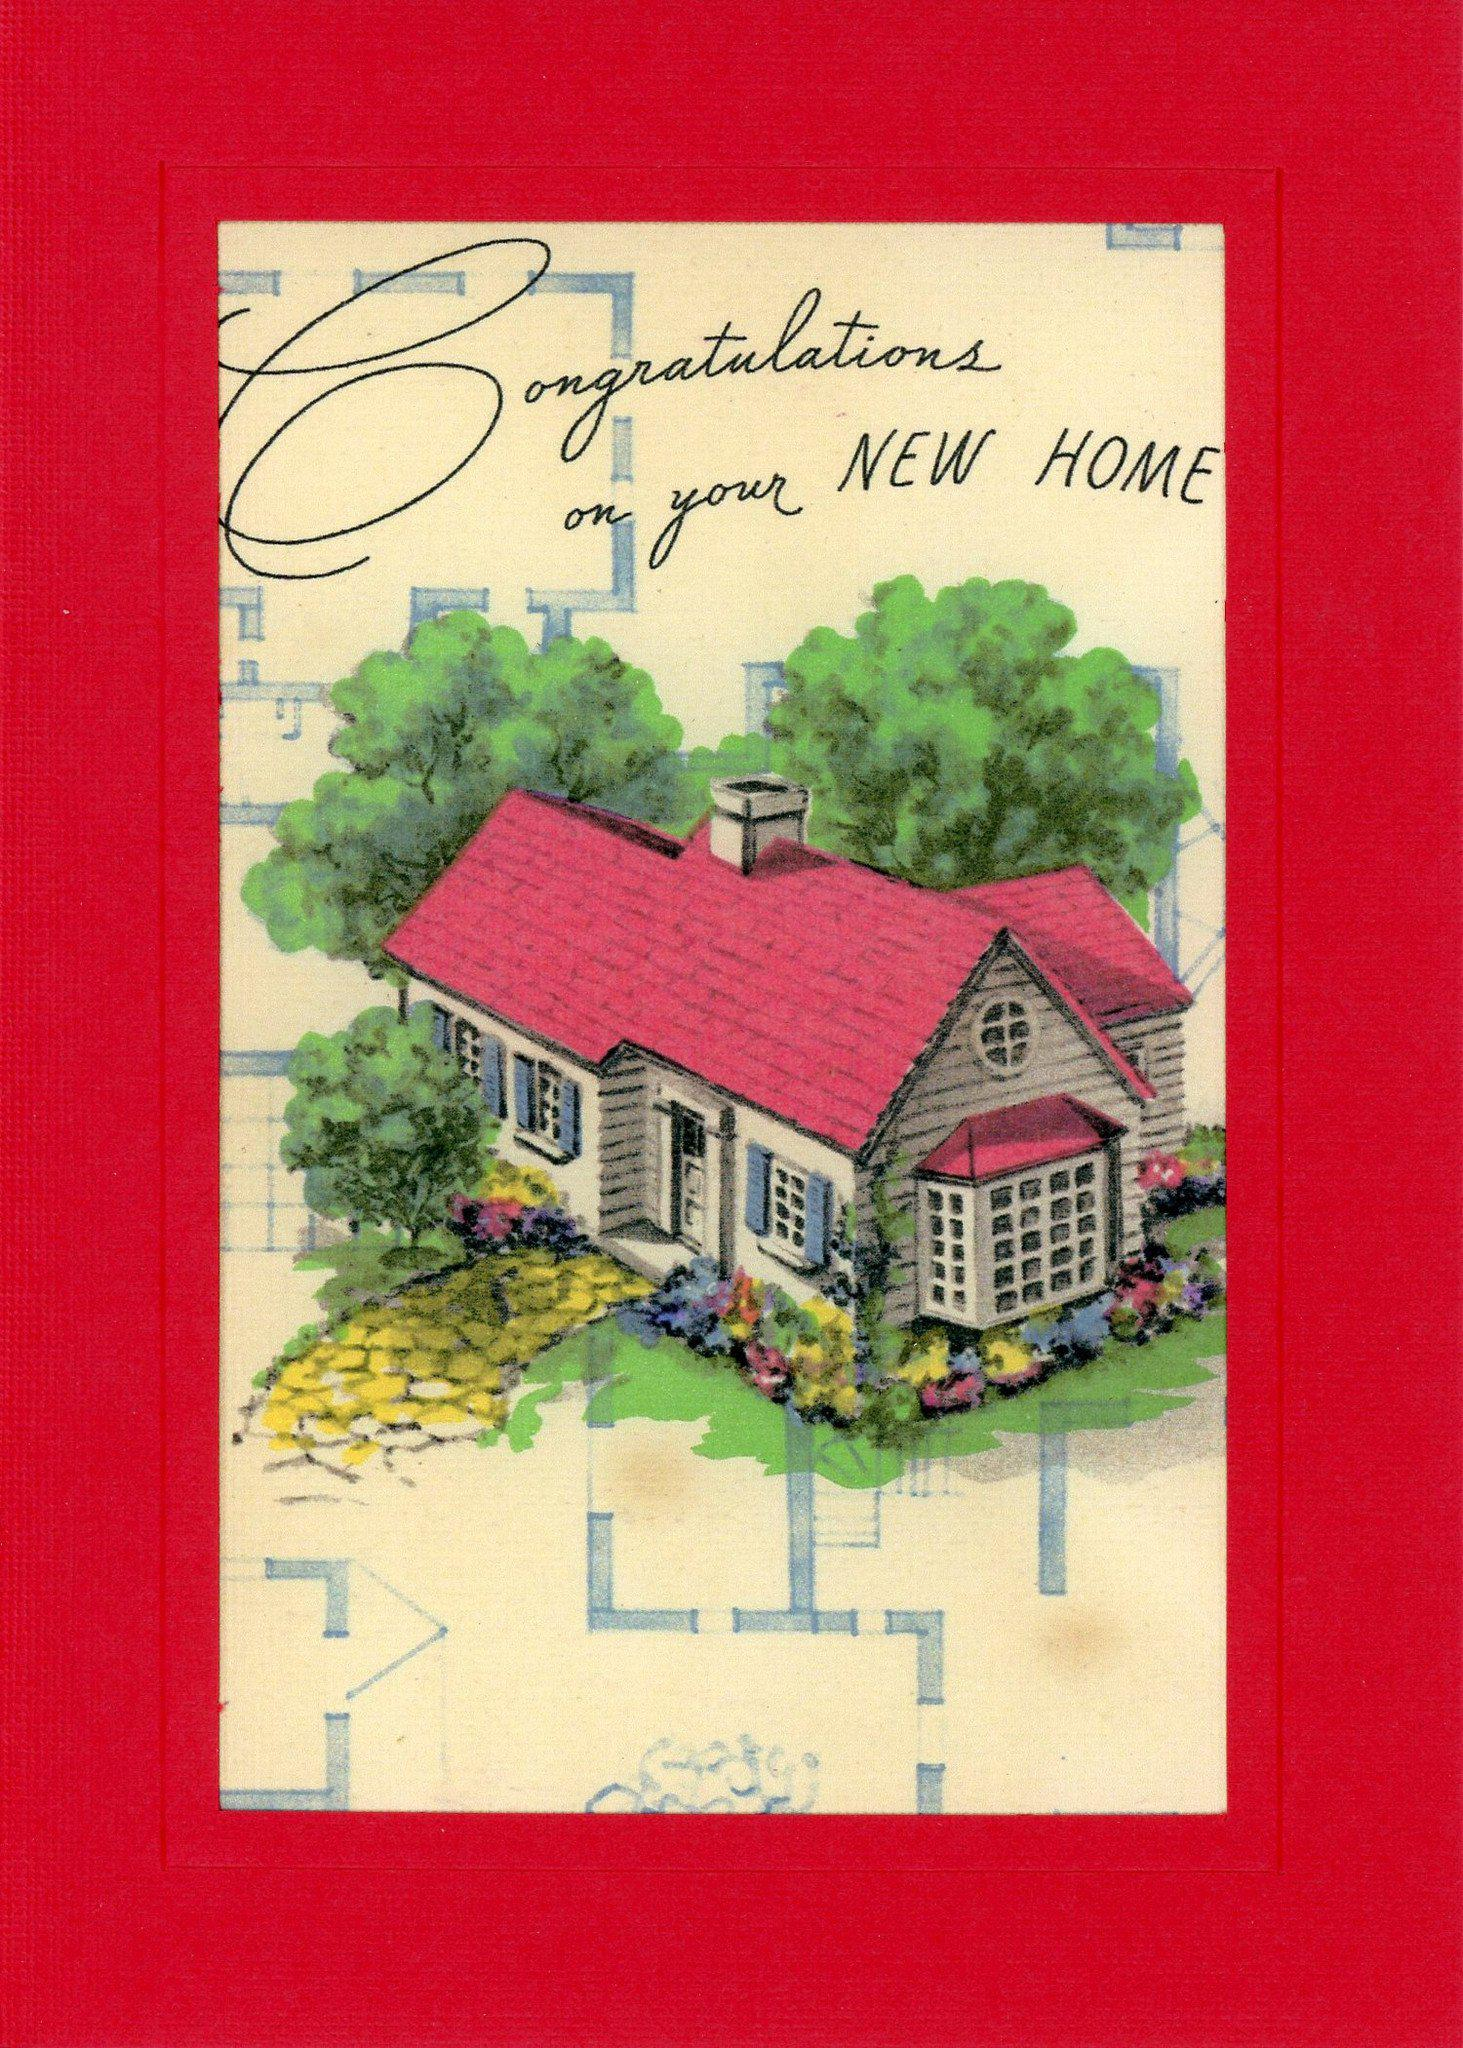 New Home Congratulations-Greetings from the Past-Plymouth Cards